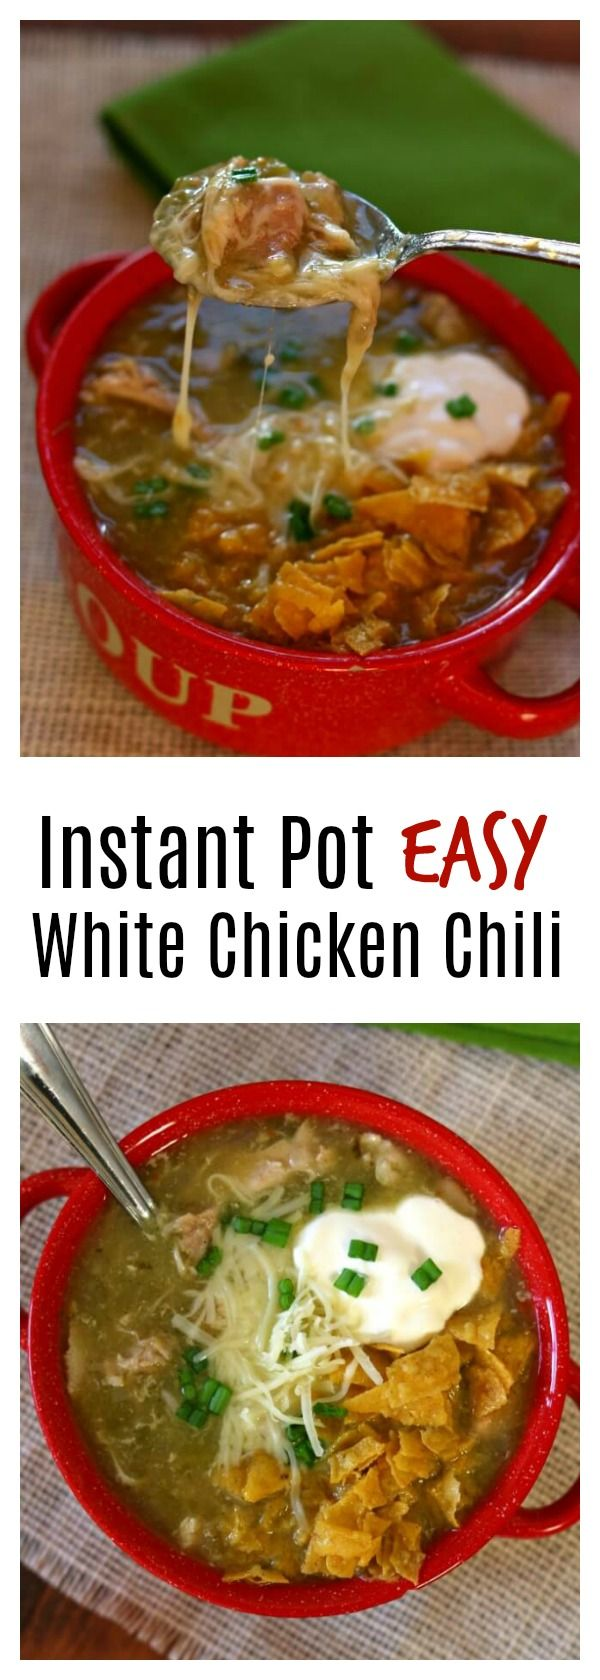 Instant Pot White Chicken Chili–this is a quick to make chili (only 5 minutes of pressure cooking time) that tastes like it's been simmering all day. You can make this recipe with uncooked chicken or cooked chicken or turkey. #instantpot